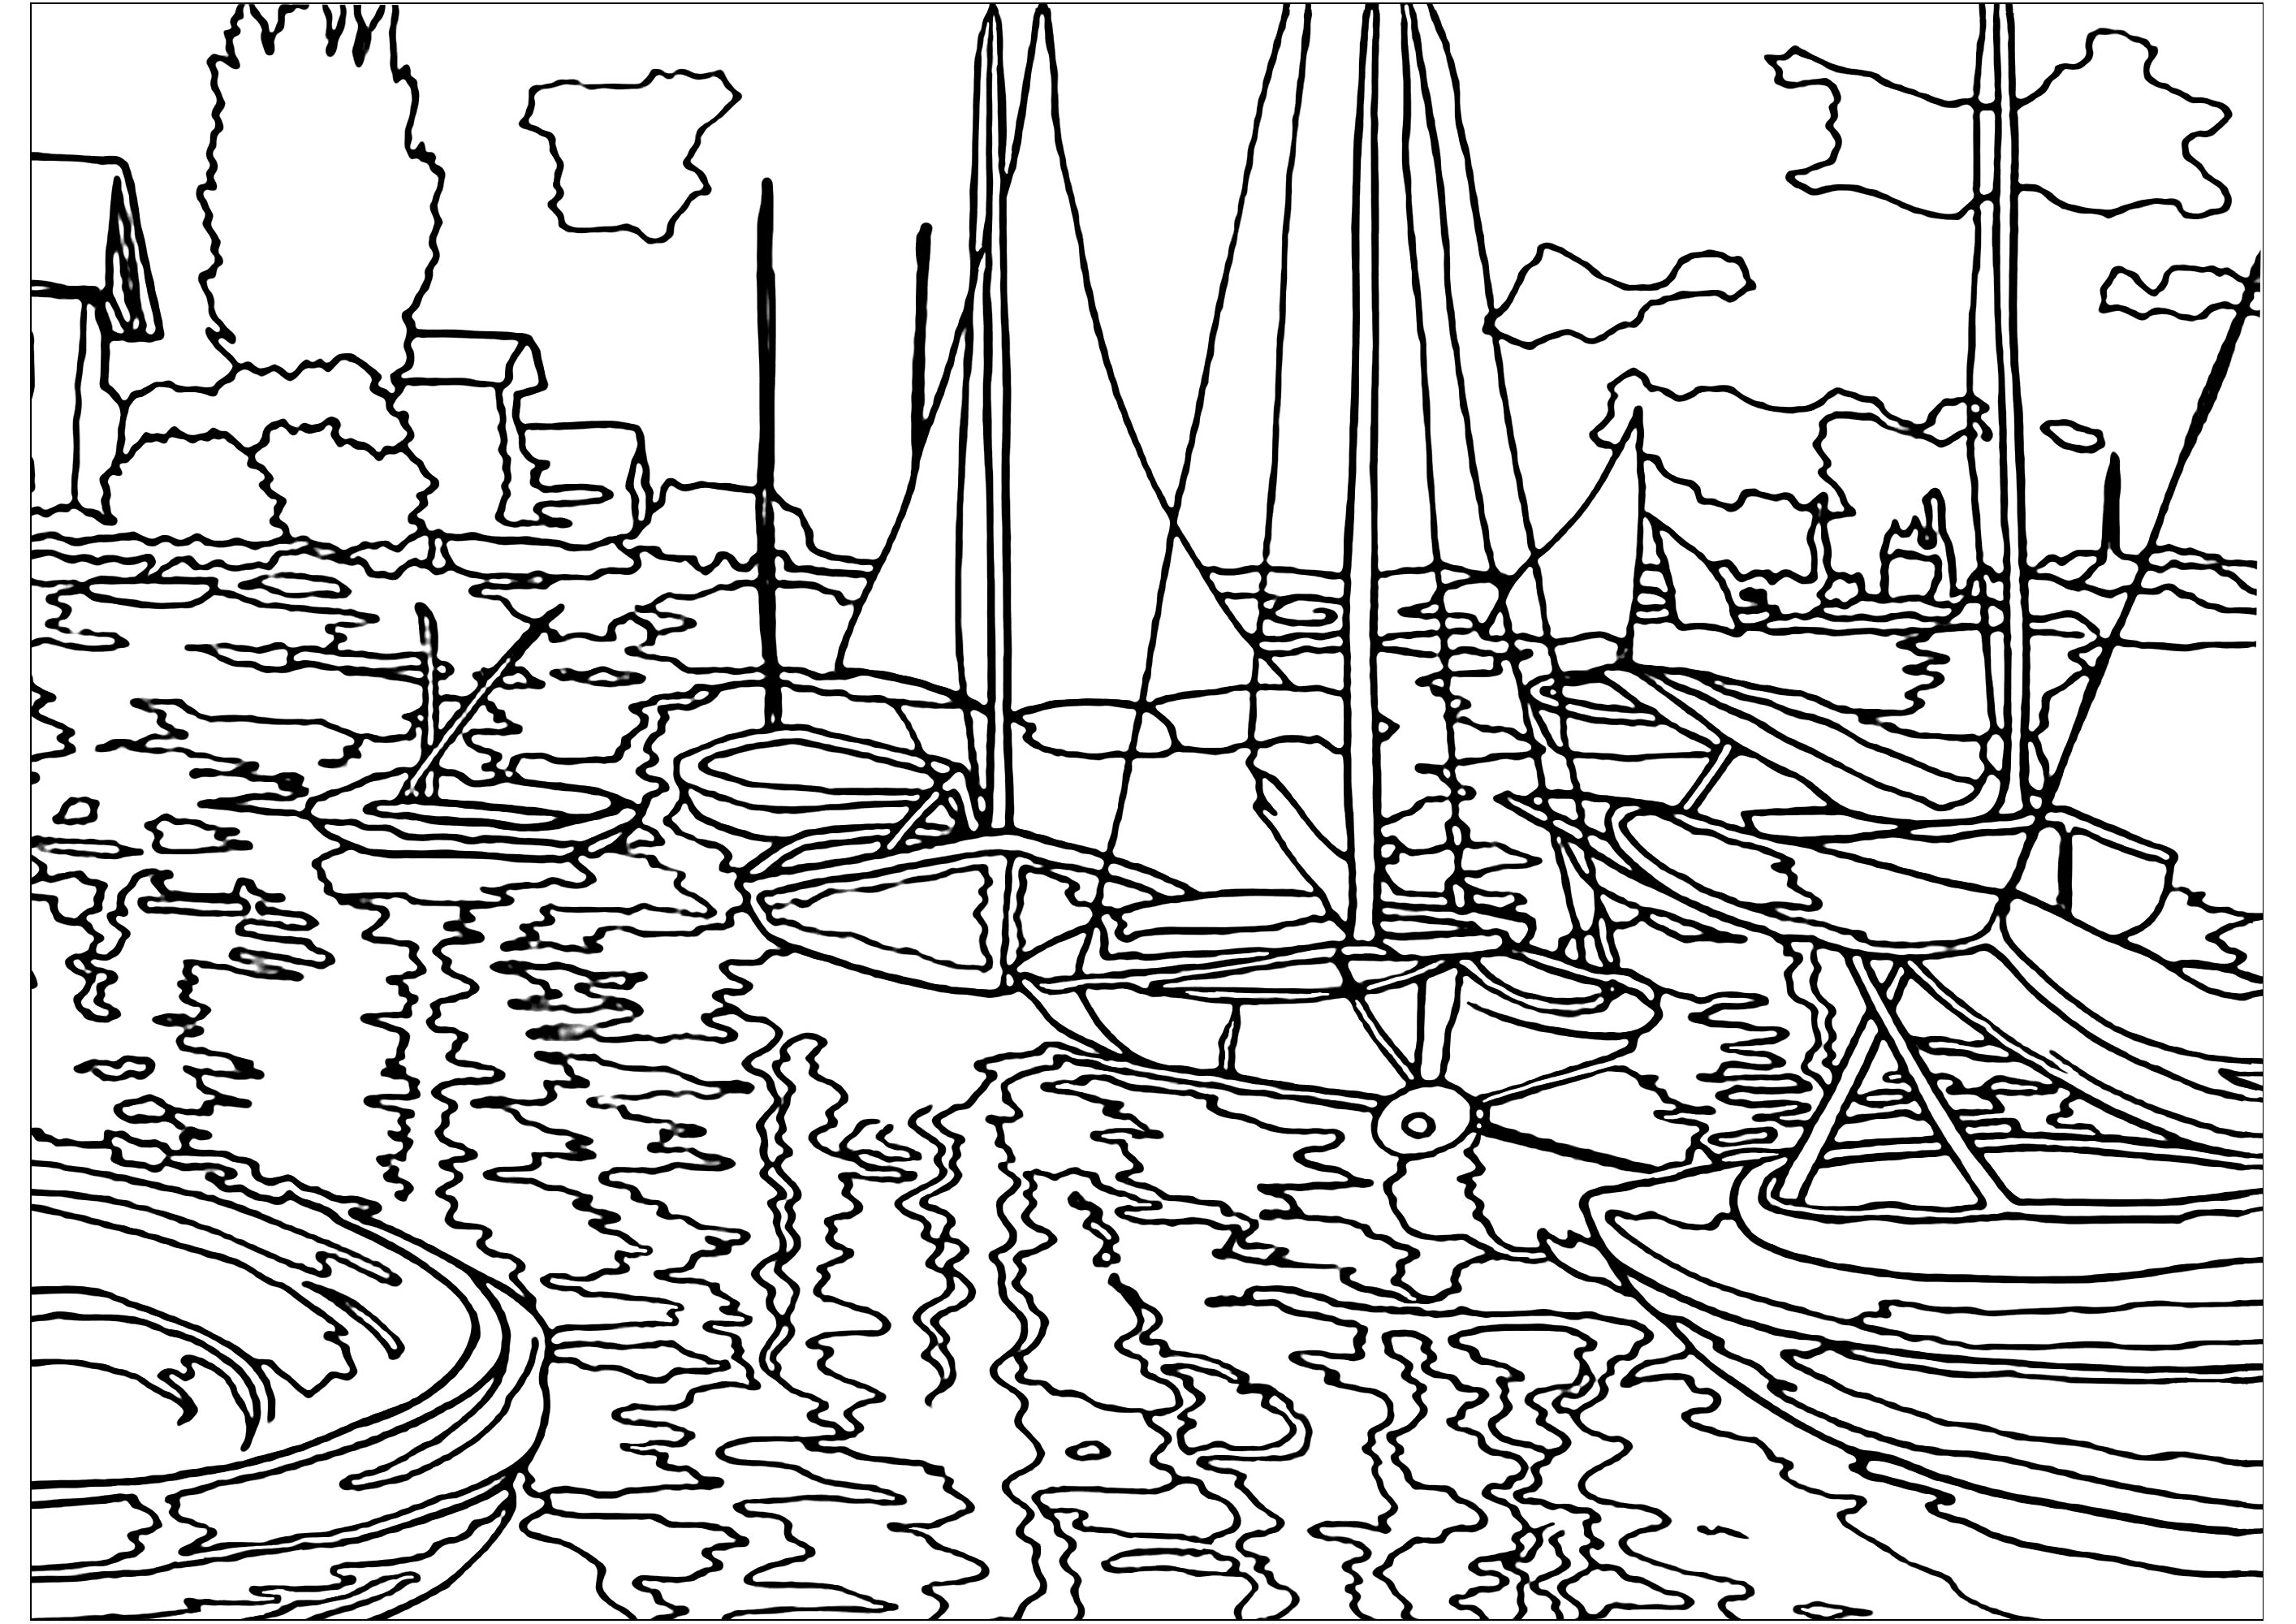 Drawing to color created from a painting by Impressionist artist Claude Monet : Sailboats on the Seine at Petit - Gennevilliers